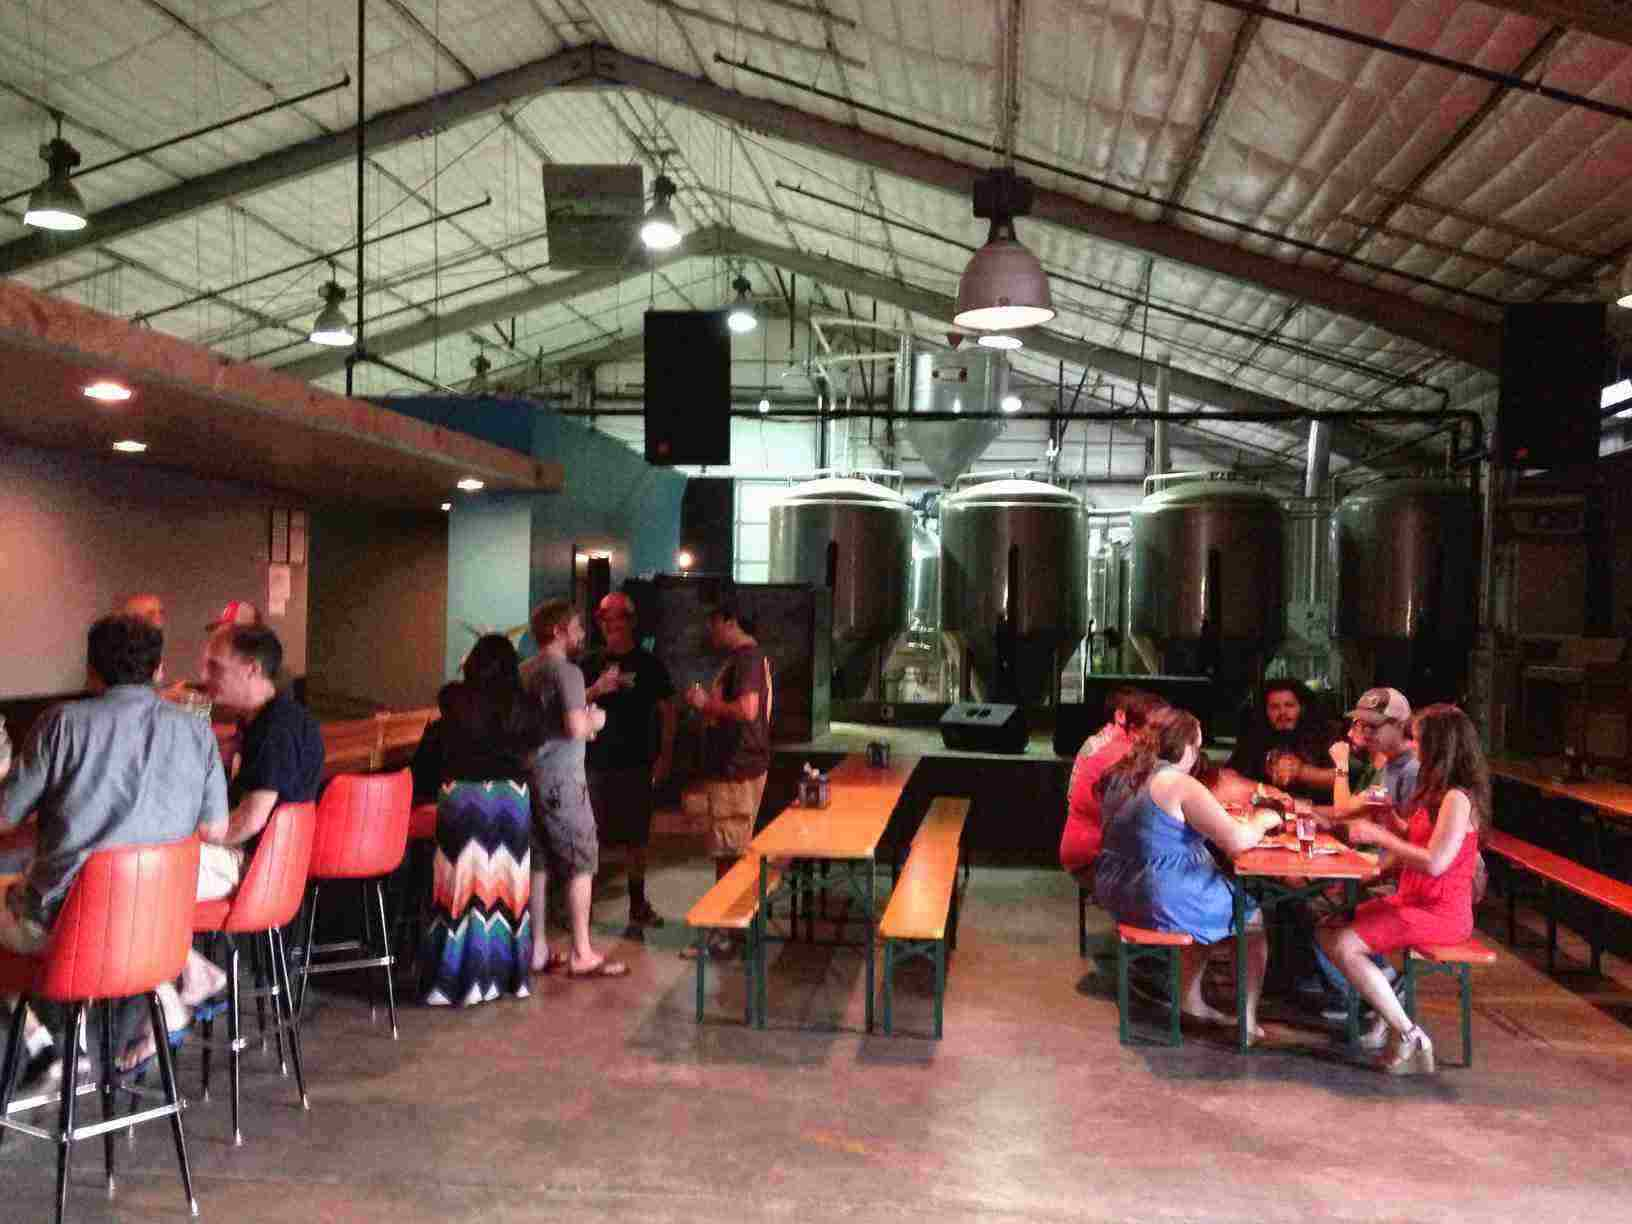 The ABGB Makes It Better Austin Beer Garden Brewing Co opens for